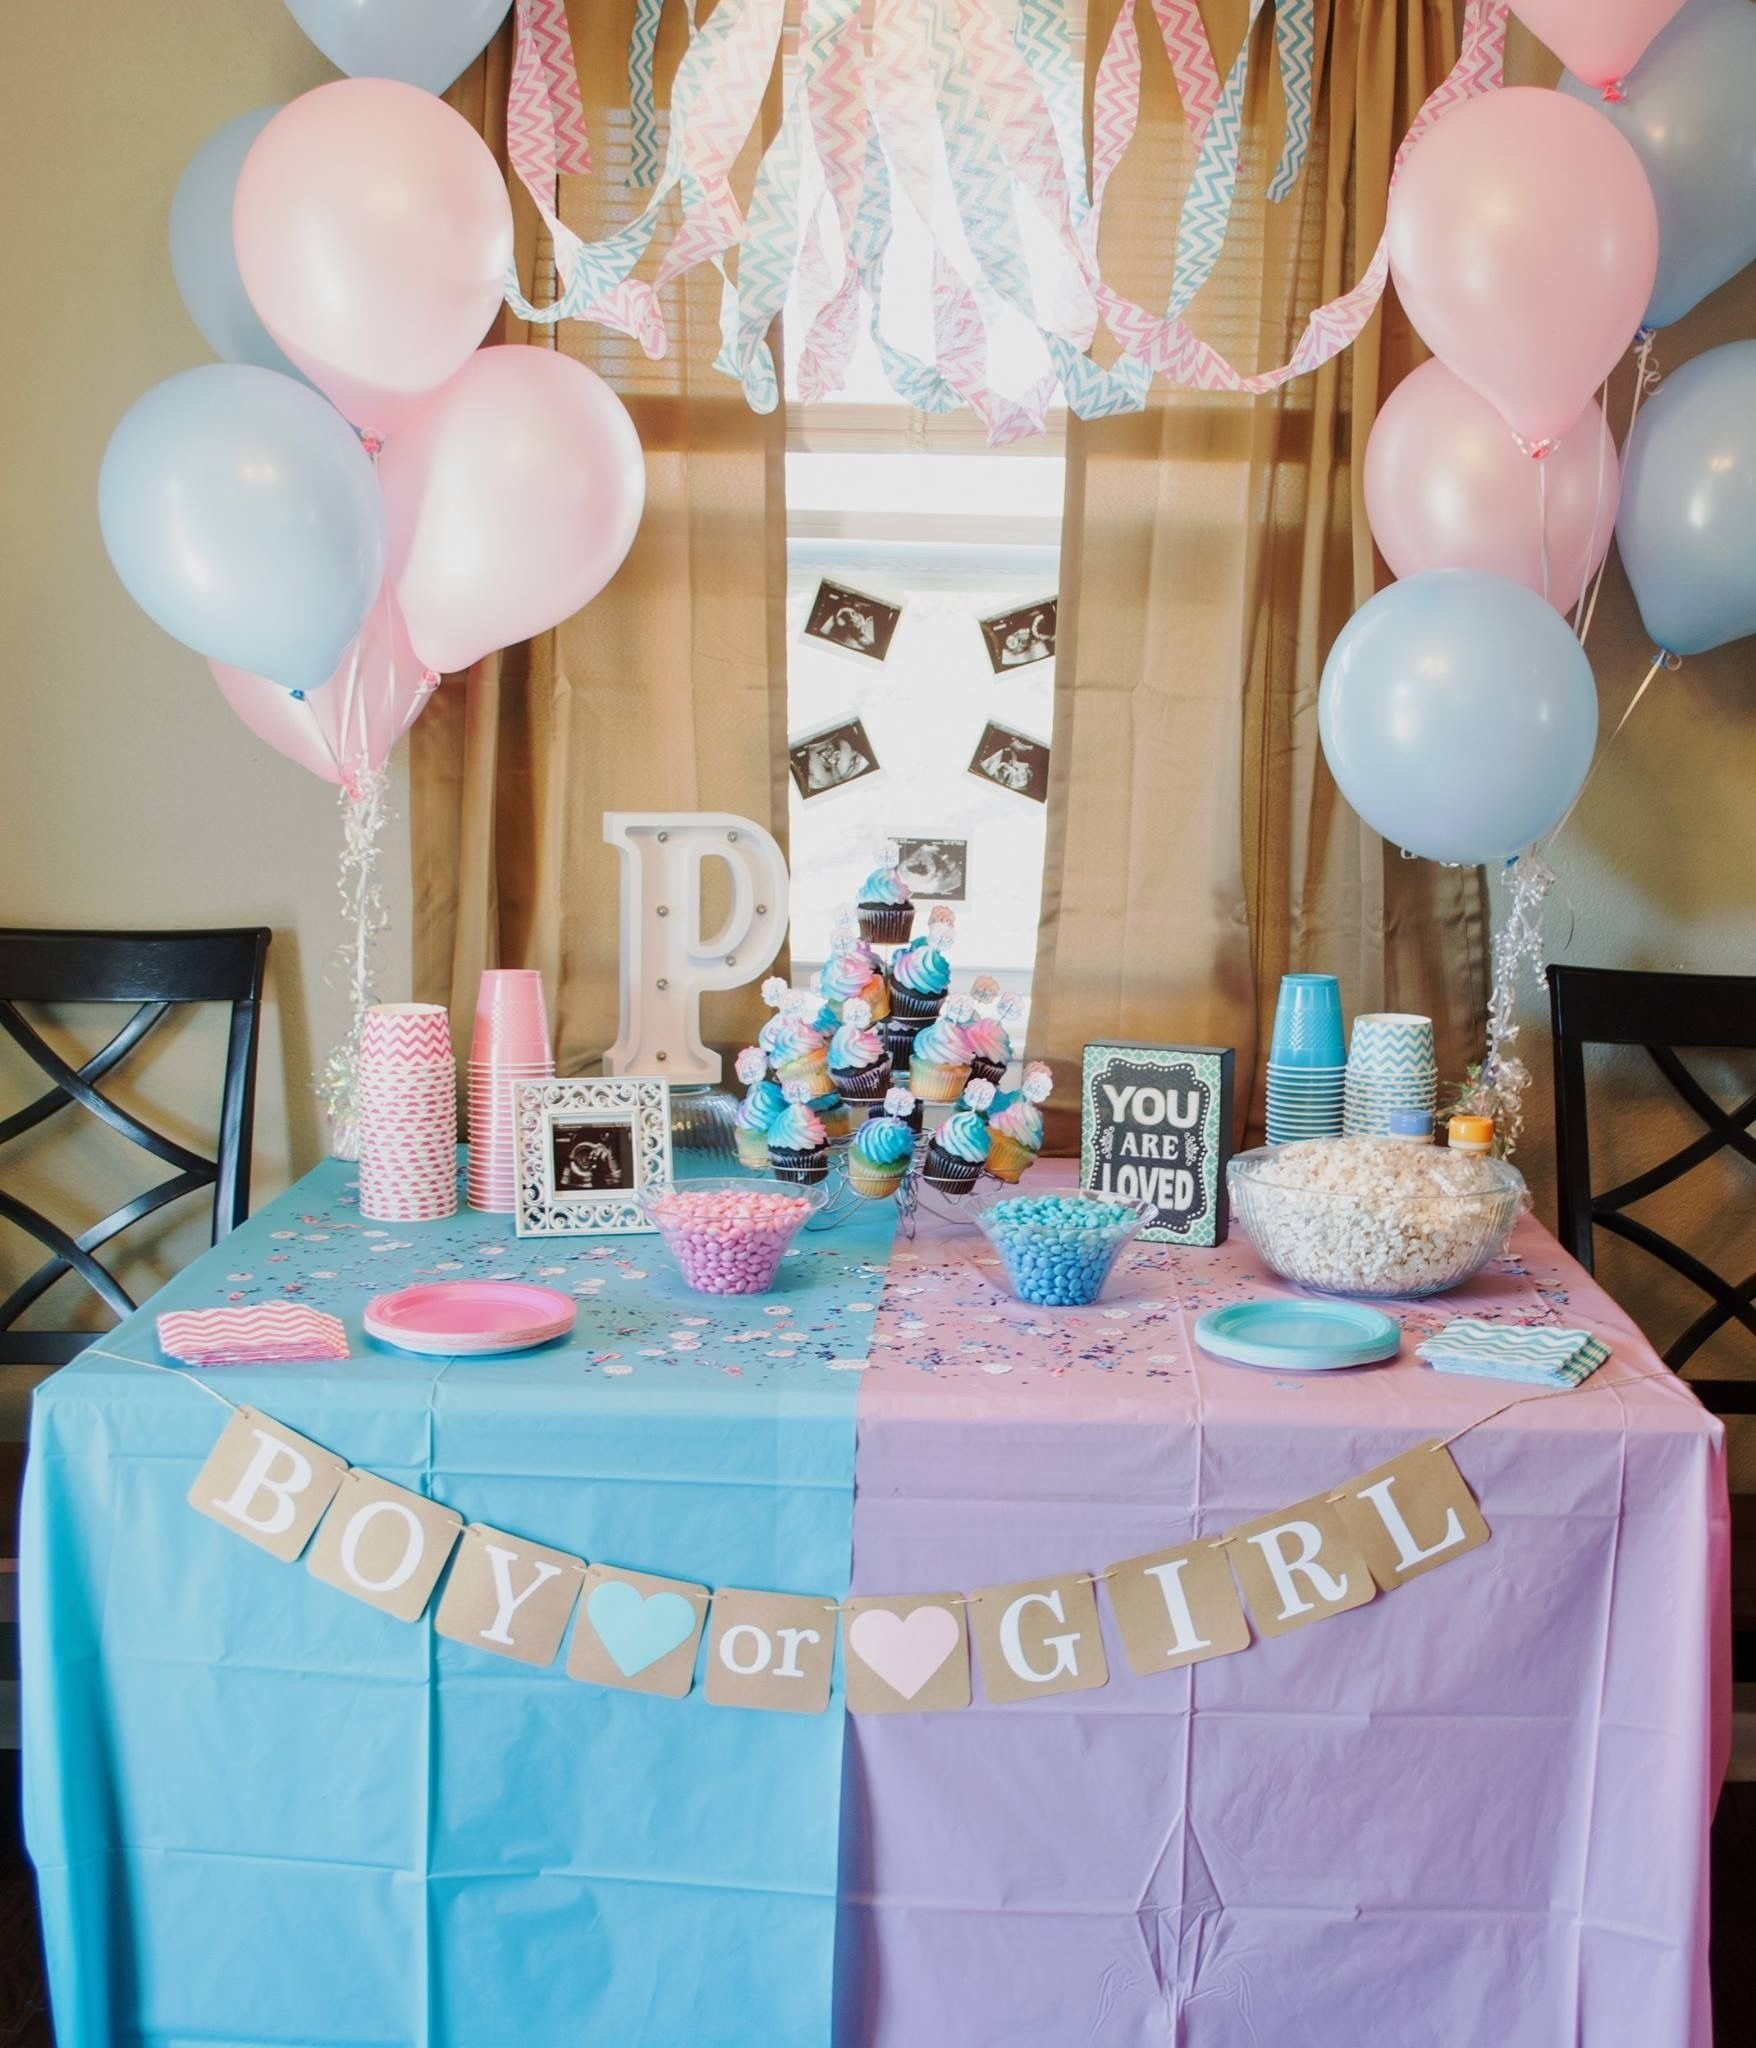 27 gender reveal party food ideas while pregnant | gender reveal